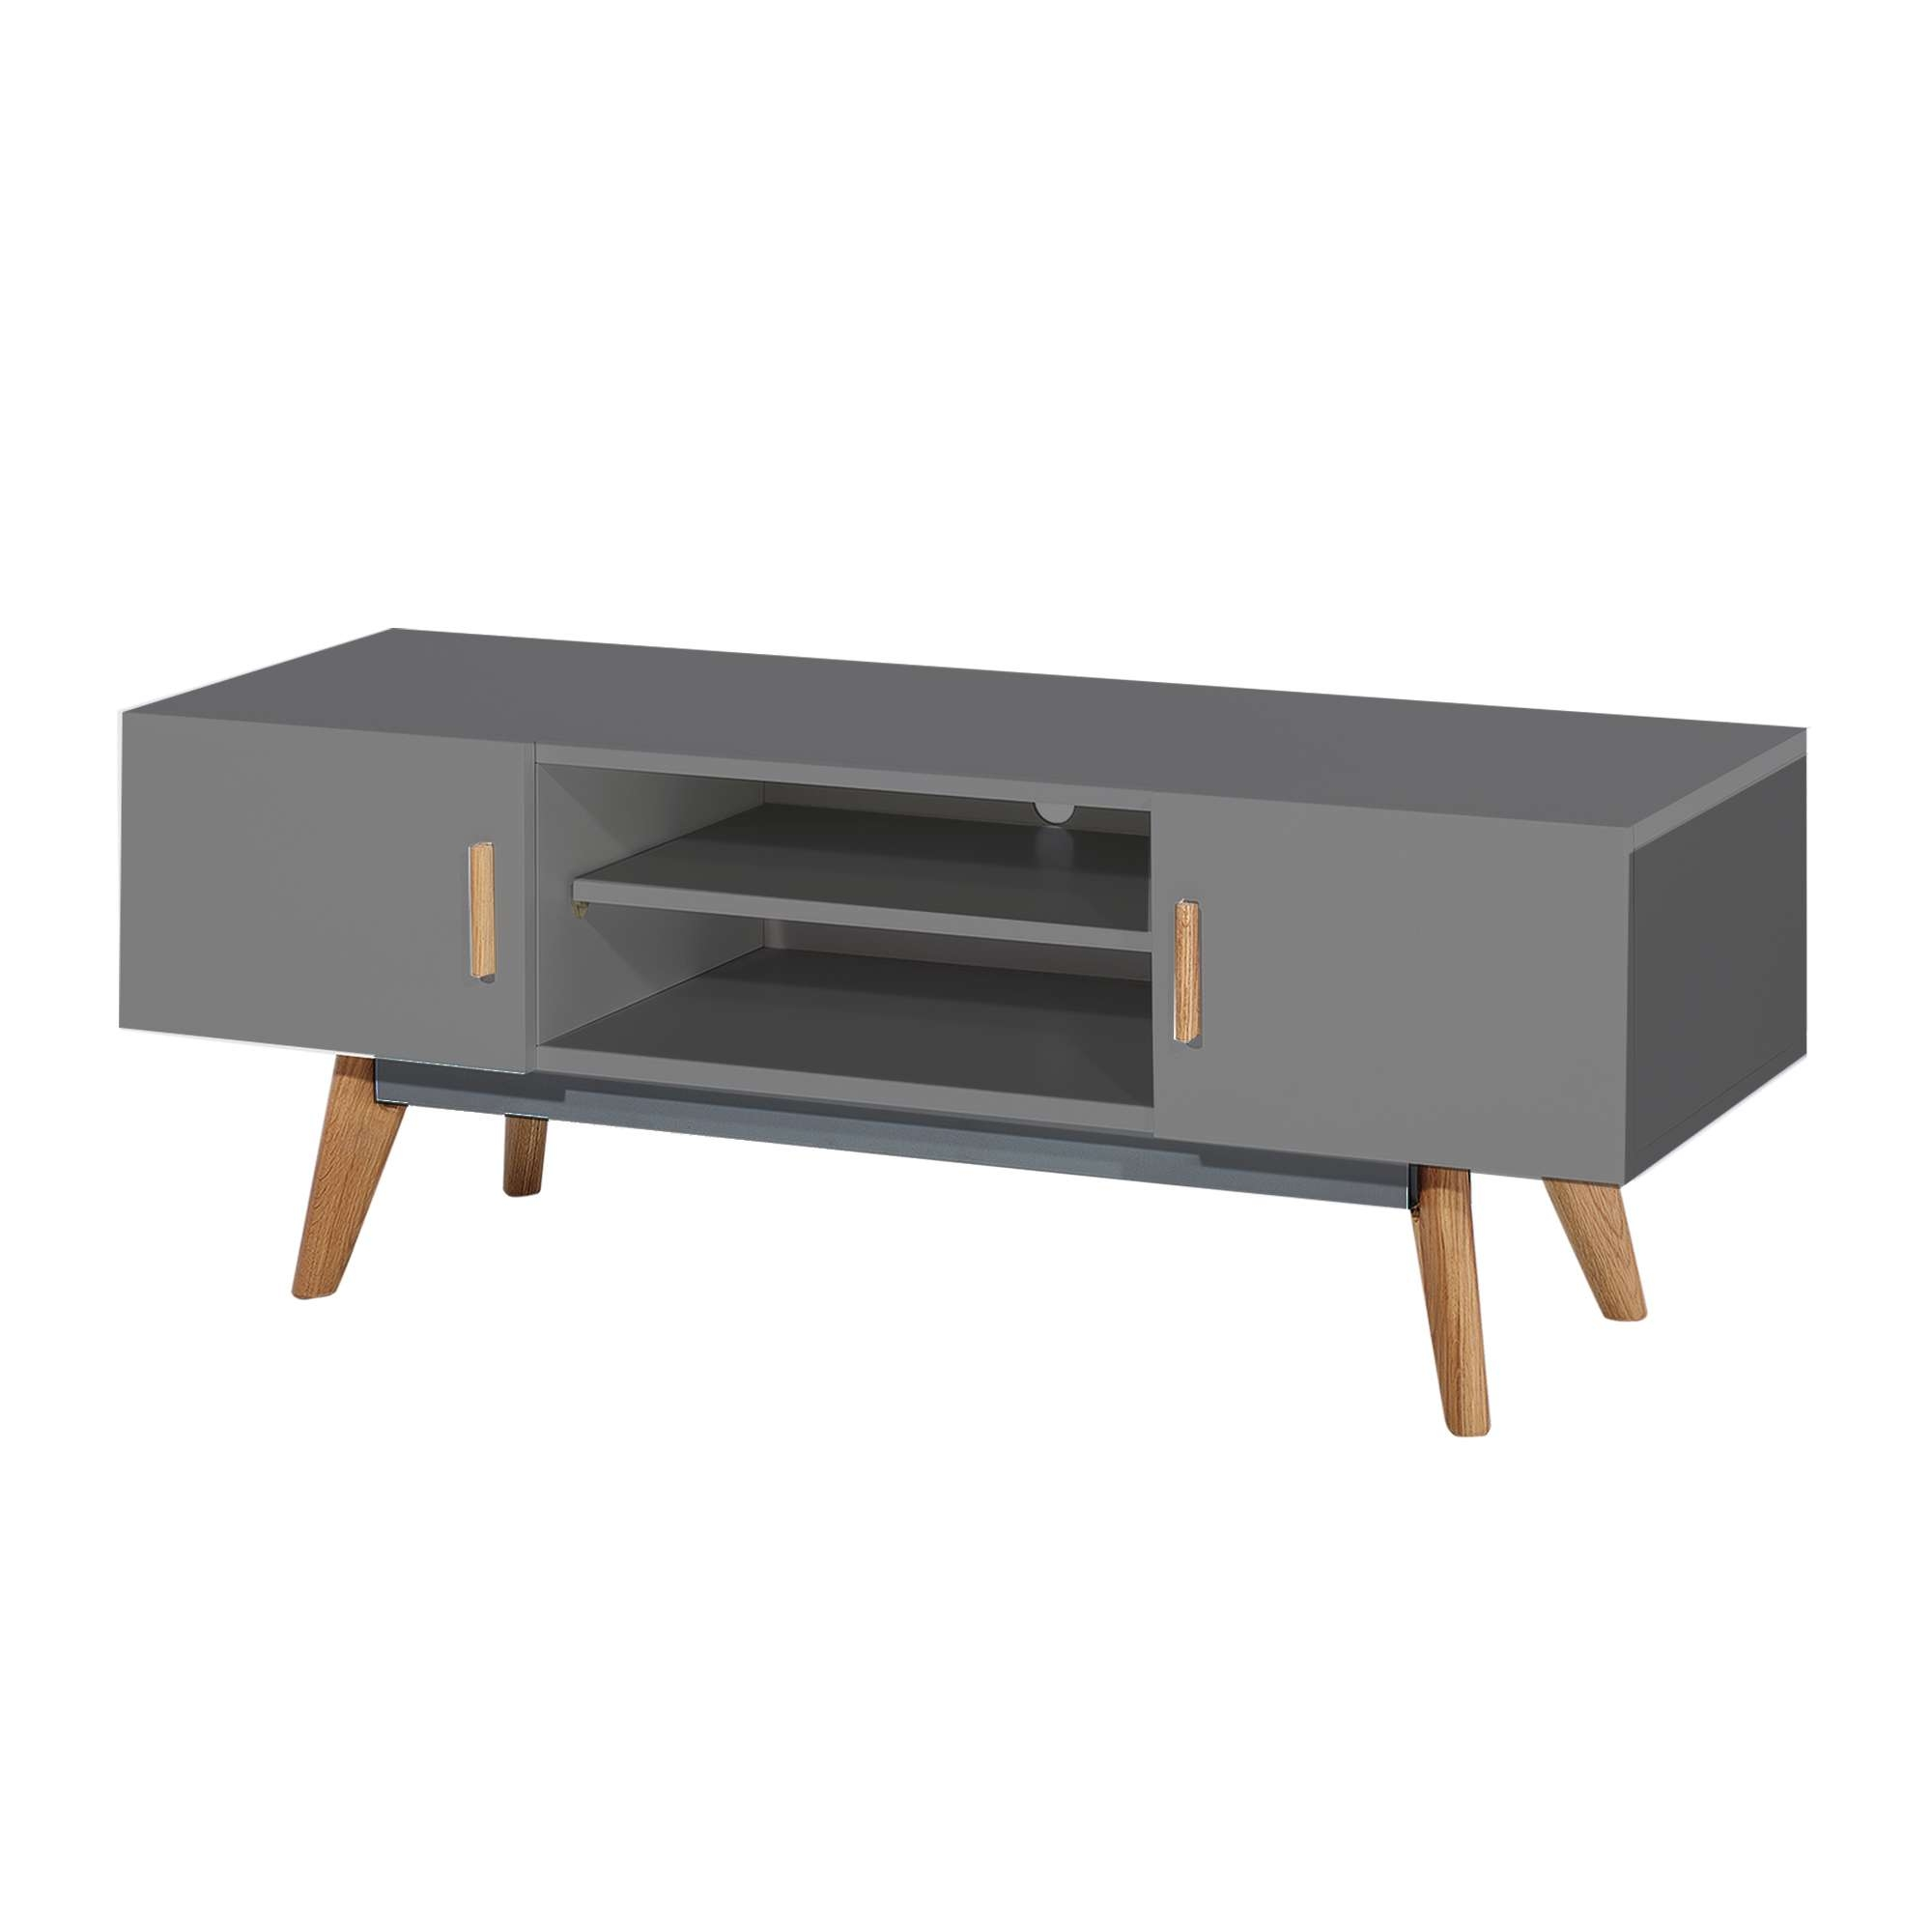 Stylish White Modern Tv Stand From Abreo Abreo Home Furniture In Scandinavian Tv Stands (View 14 of 15)